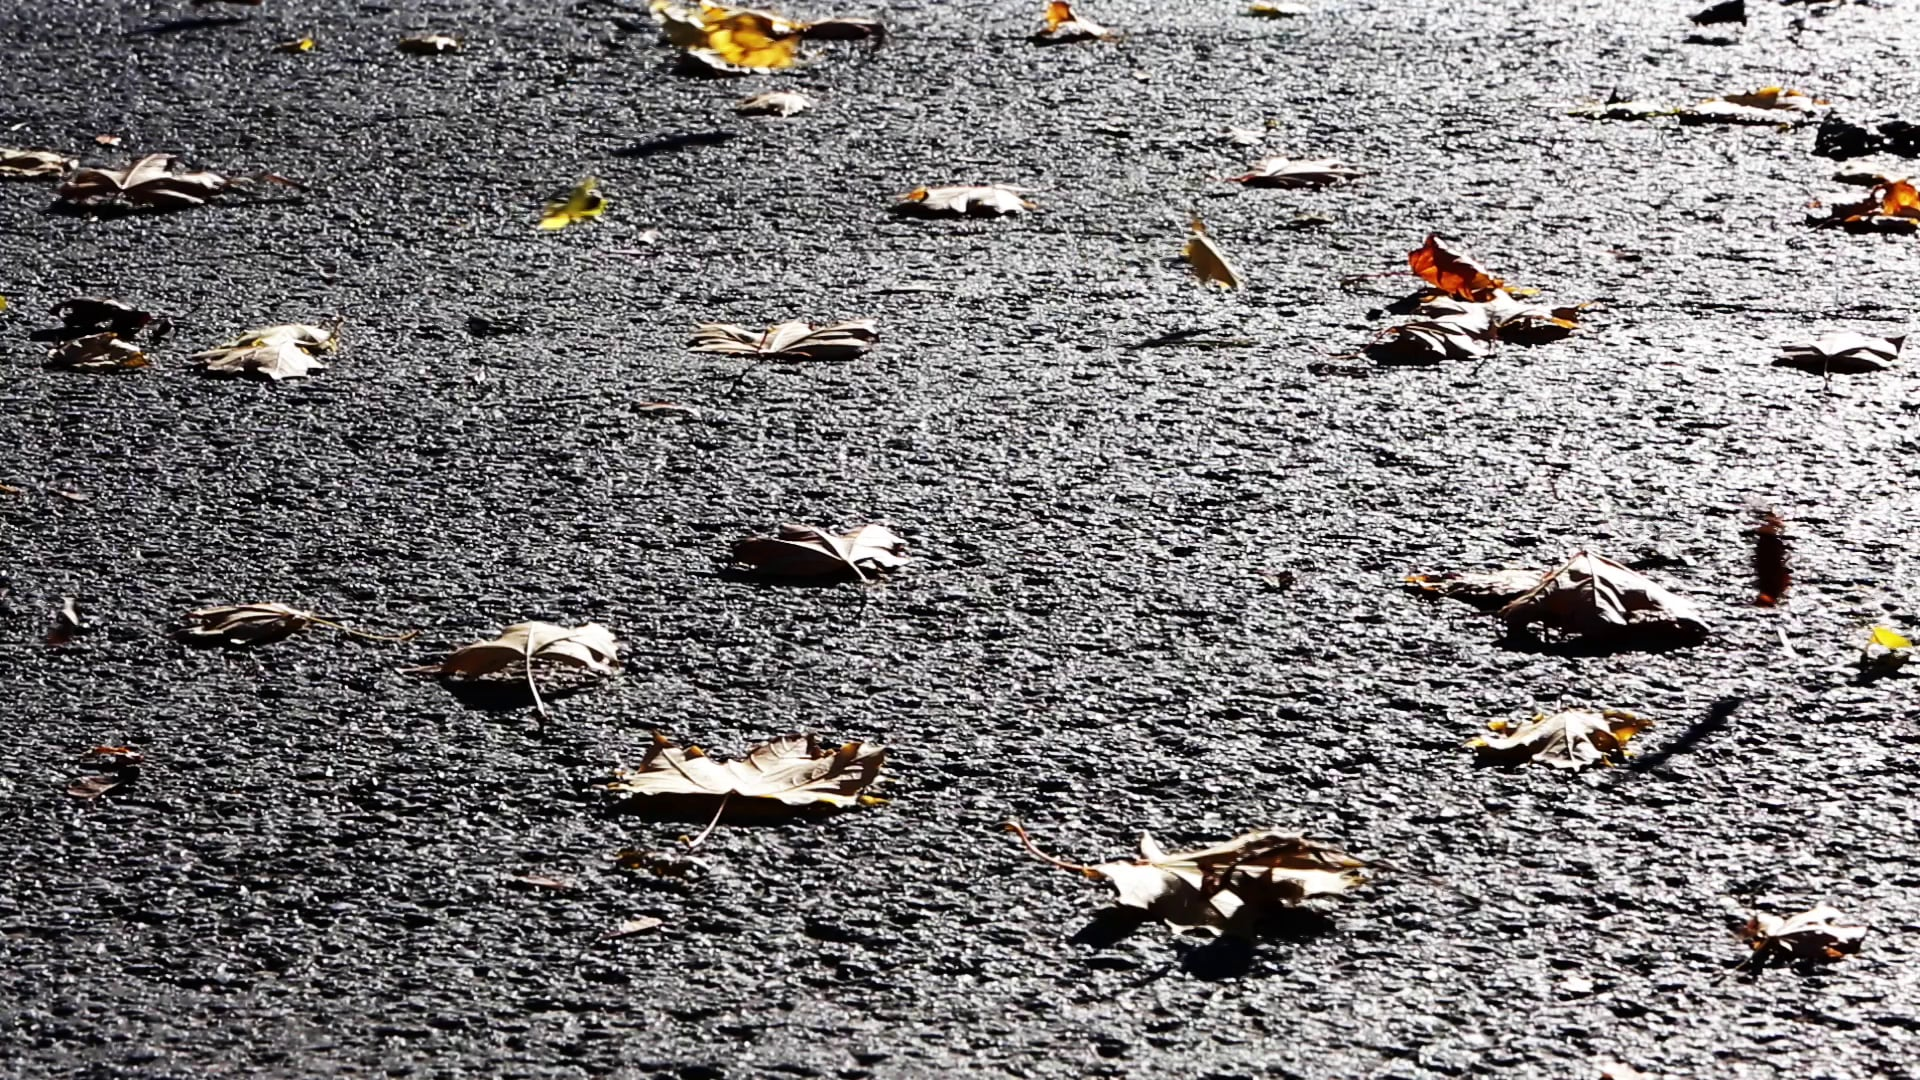 Blown Leaves on Asphalt